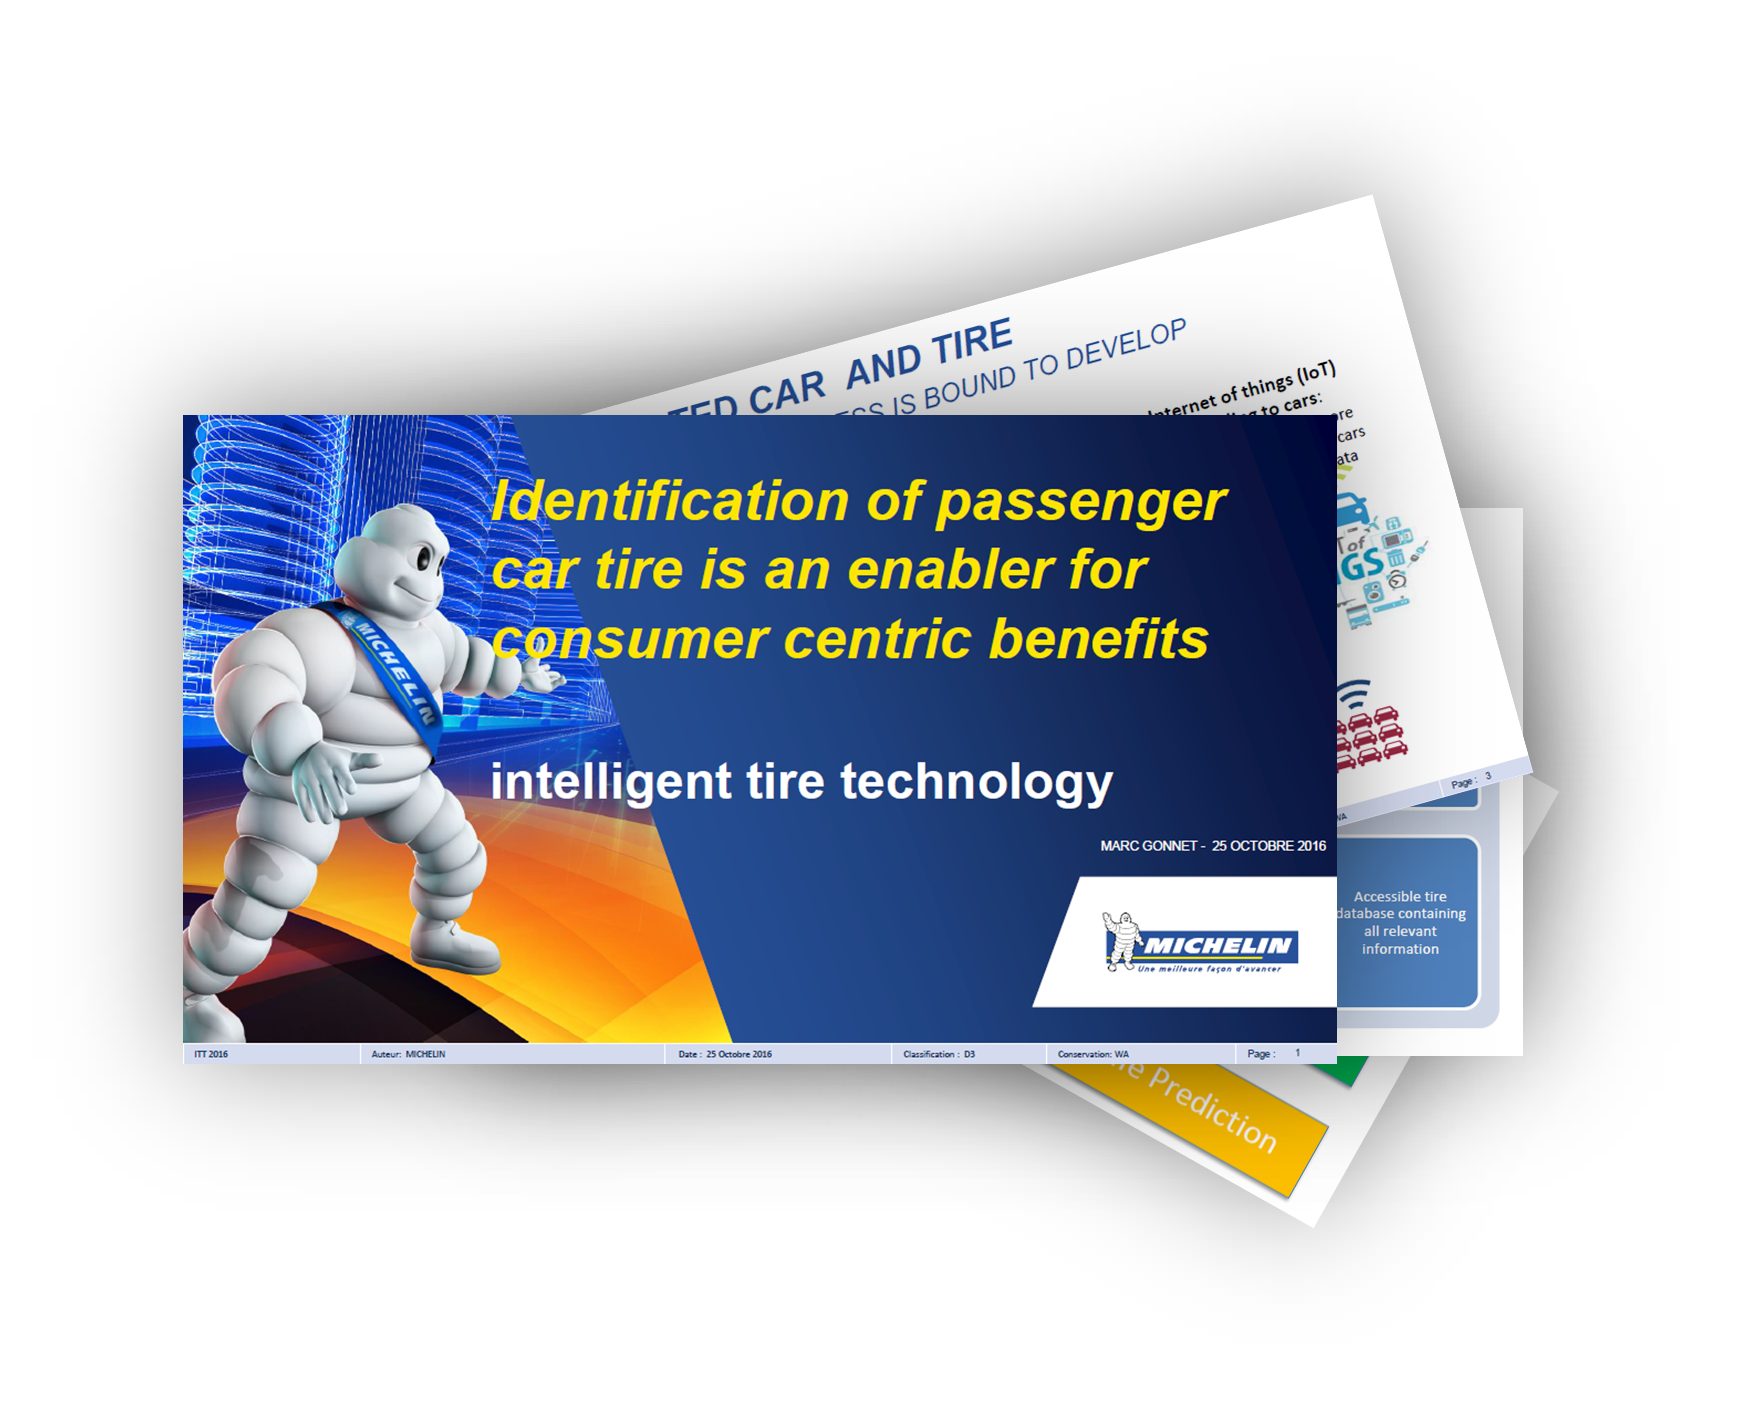 Identification of passenger car tire and consumer centric benefits